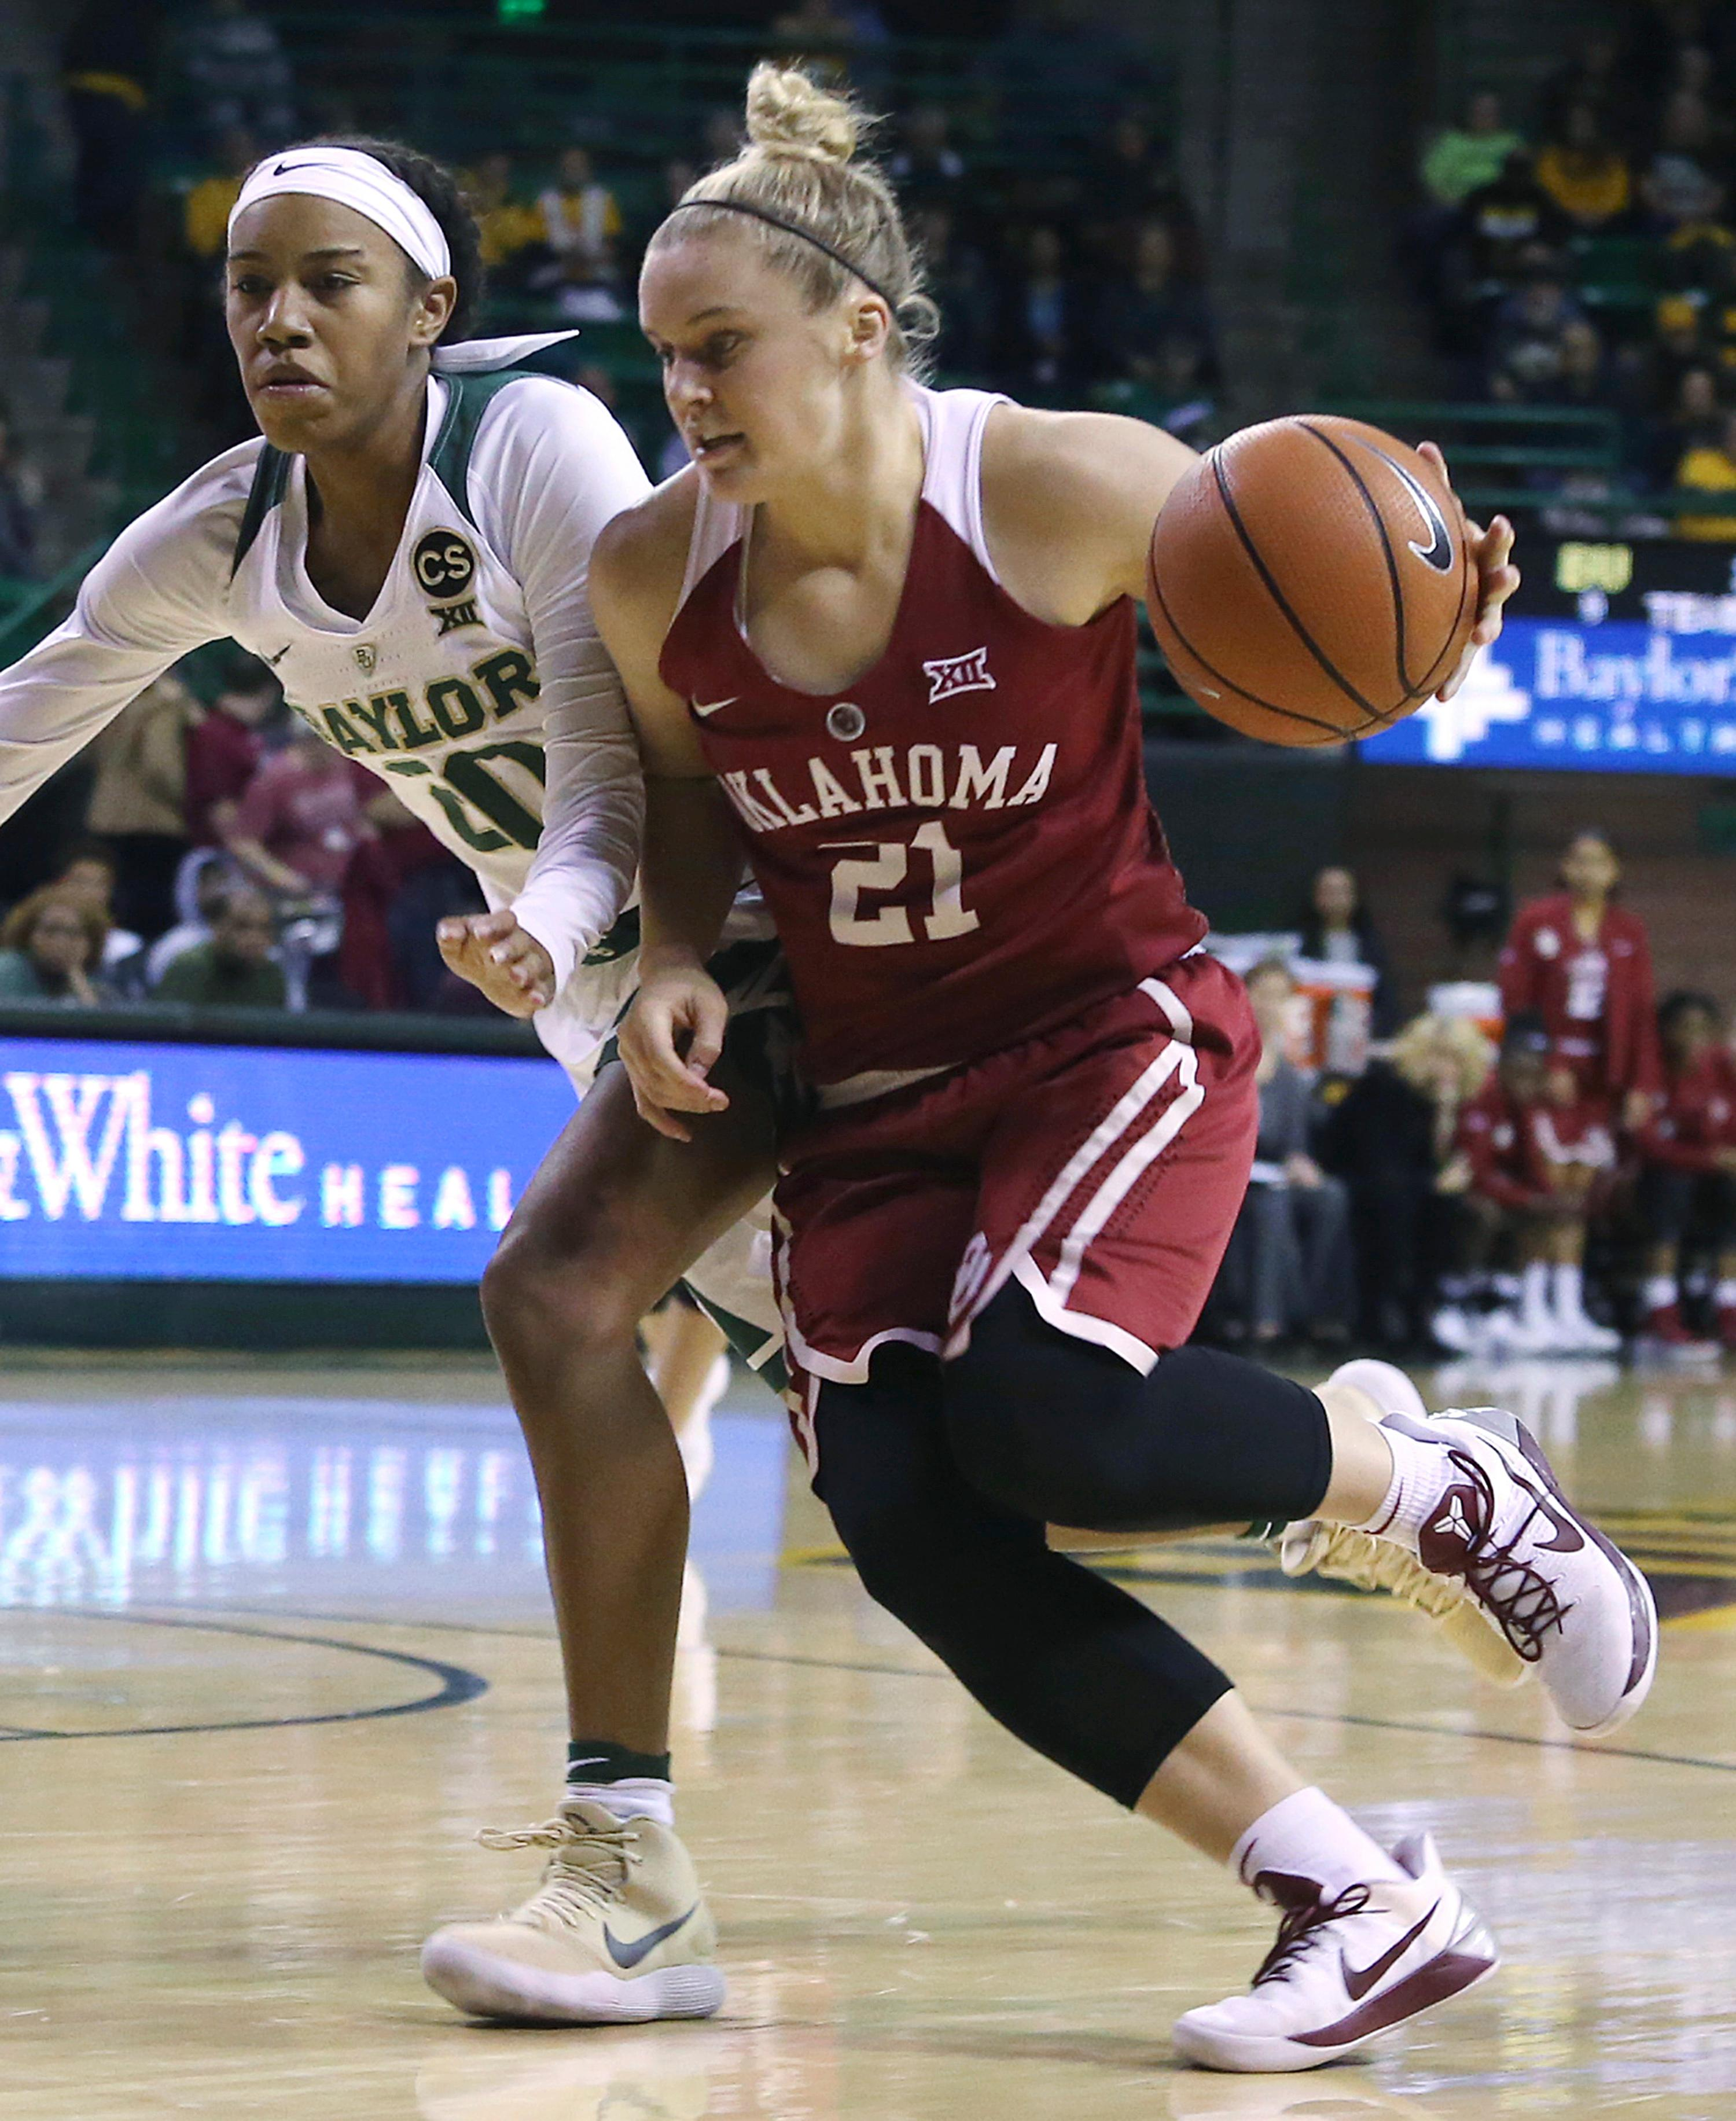 Oklahoma guard Gabbi Ortiz, right, drives the ball up court against Baylor guard Juicy Landrum, left, during the first half of an NCAA college basketball game, Monday, Feb. 5, 2018, in Waco, Texas. (AP Photo/Jerry Larson)